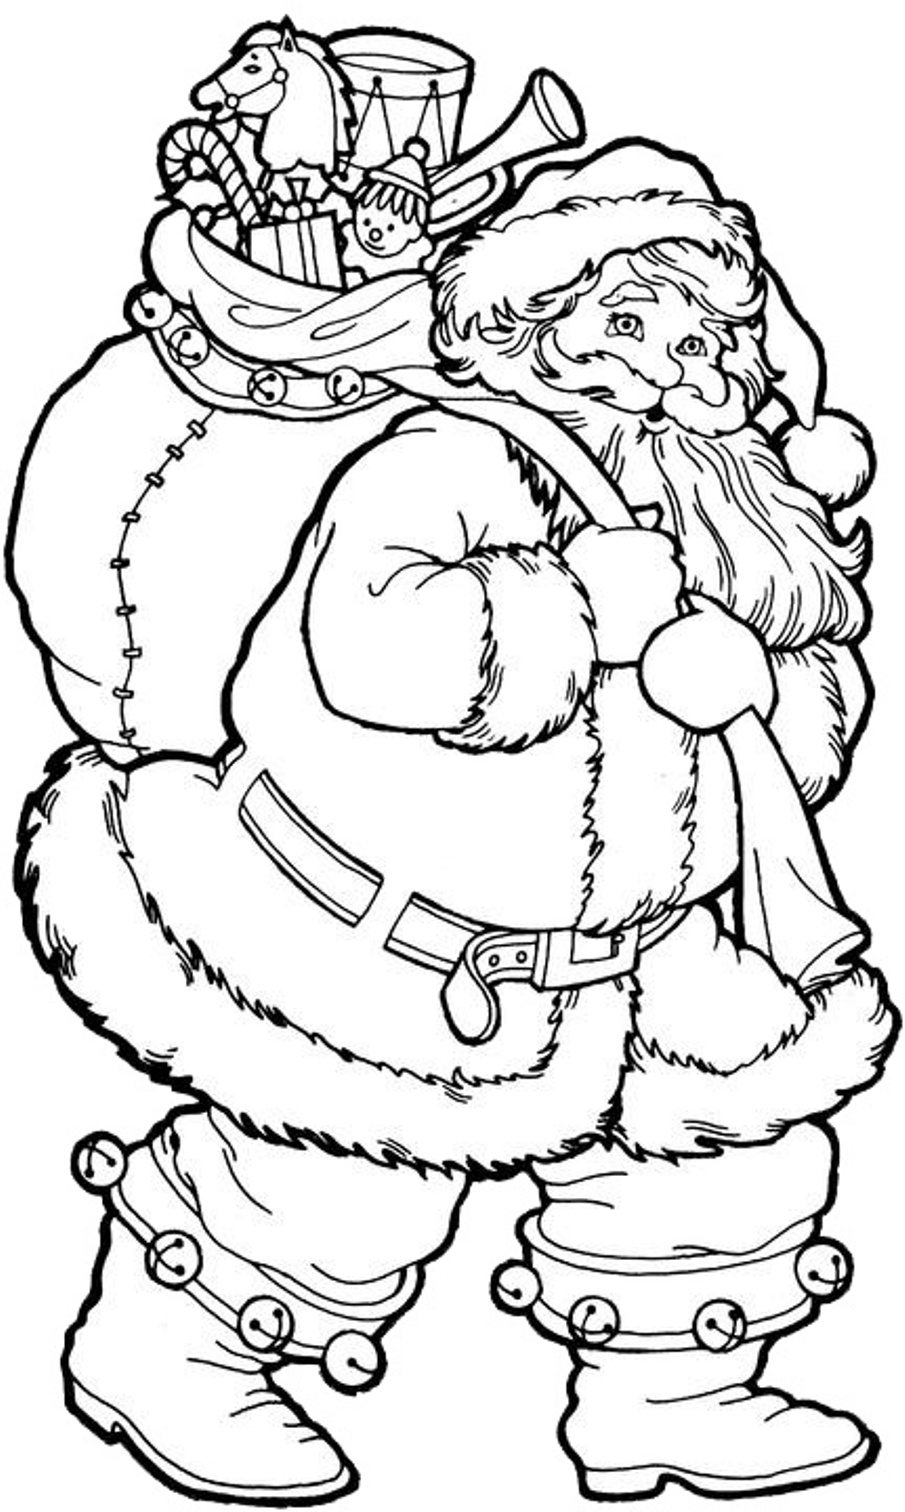 905x1512 santa claus coloring printable santa claus coloring printables - Santa Claus Coloring Printables